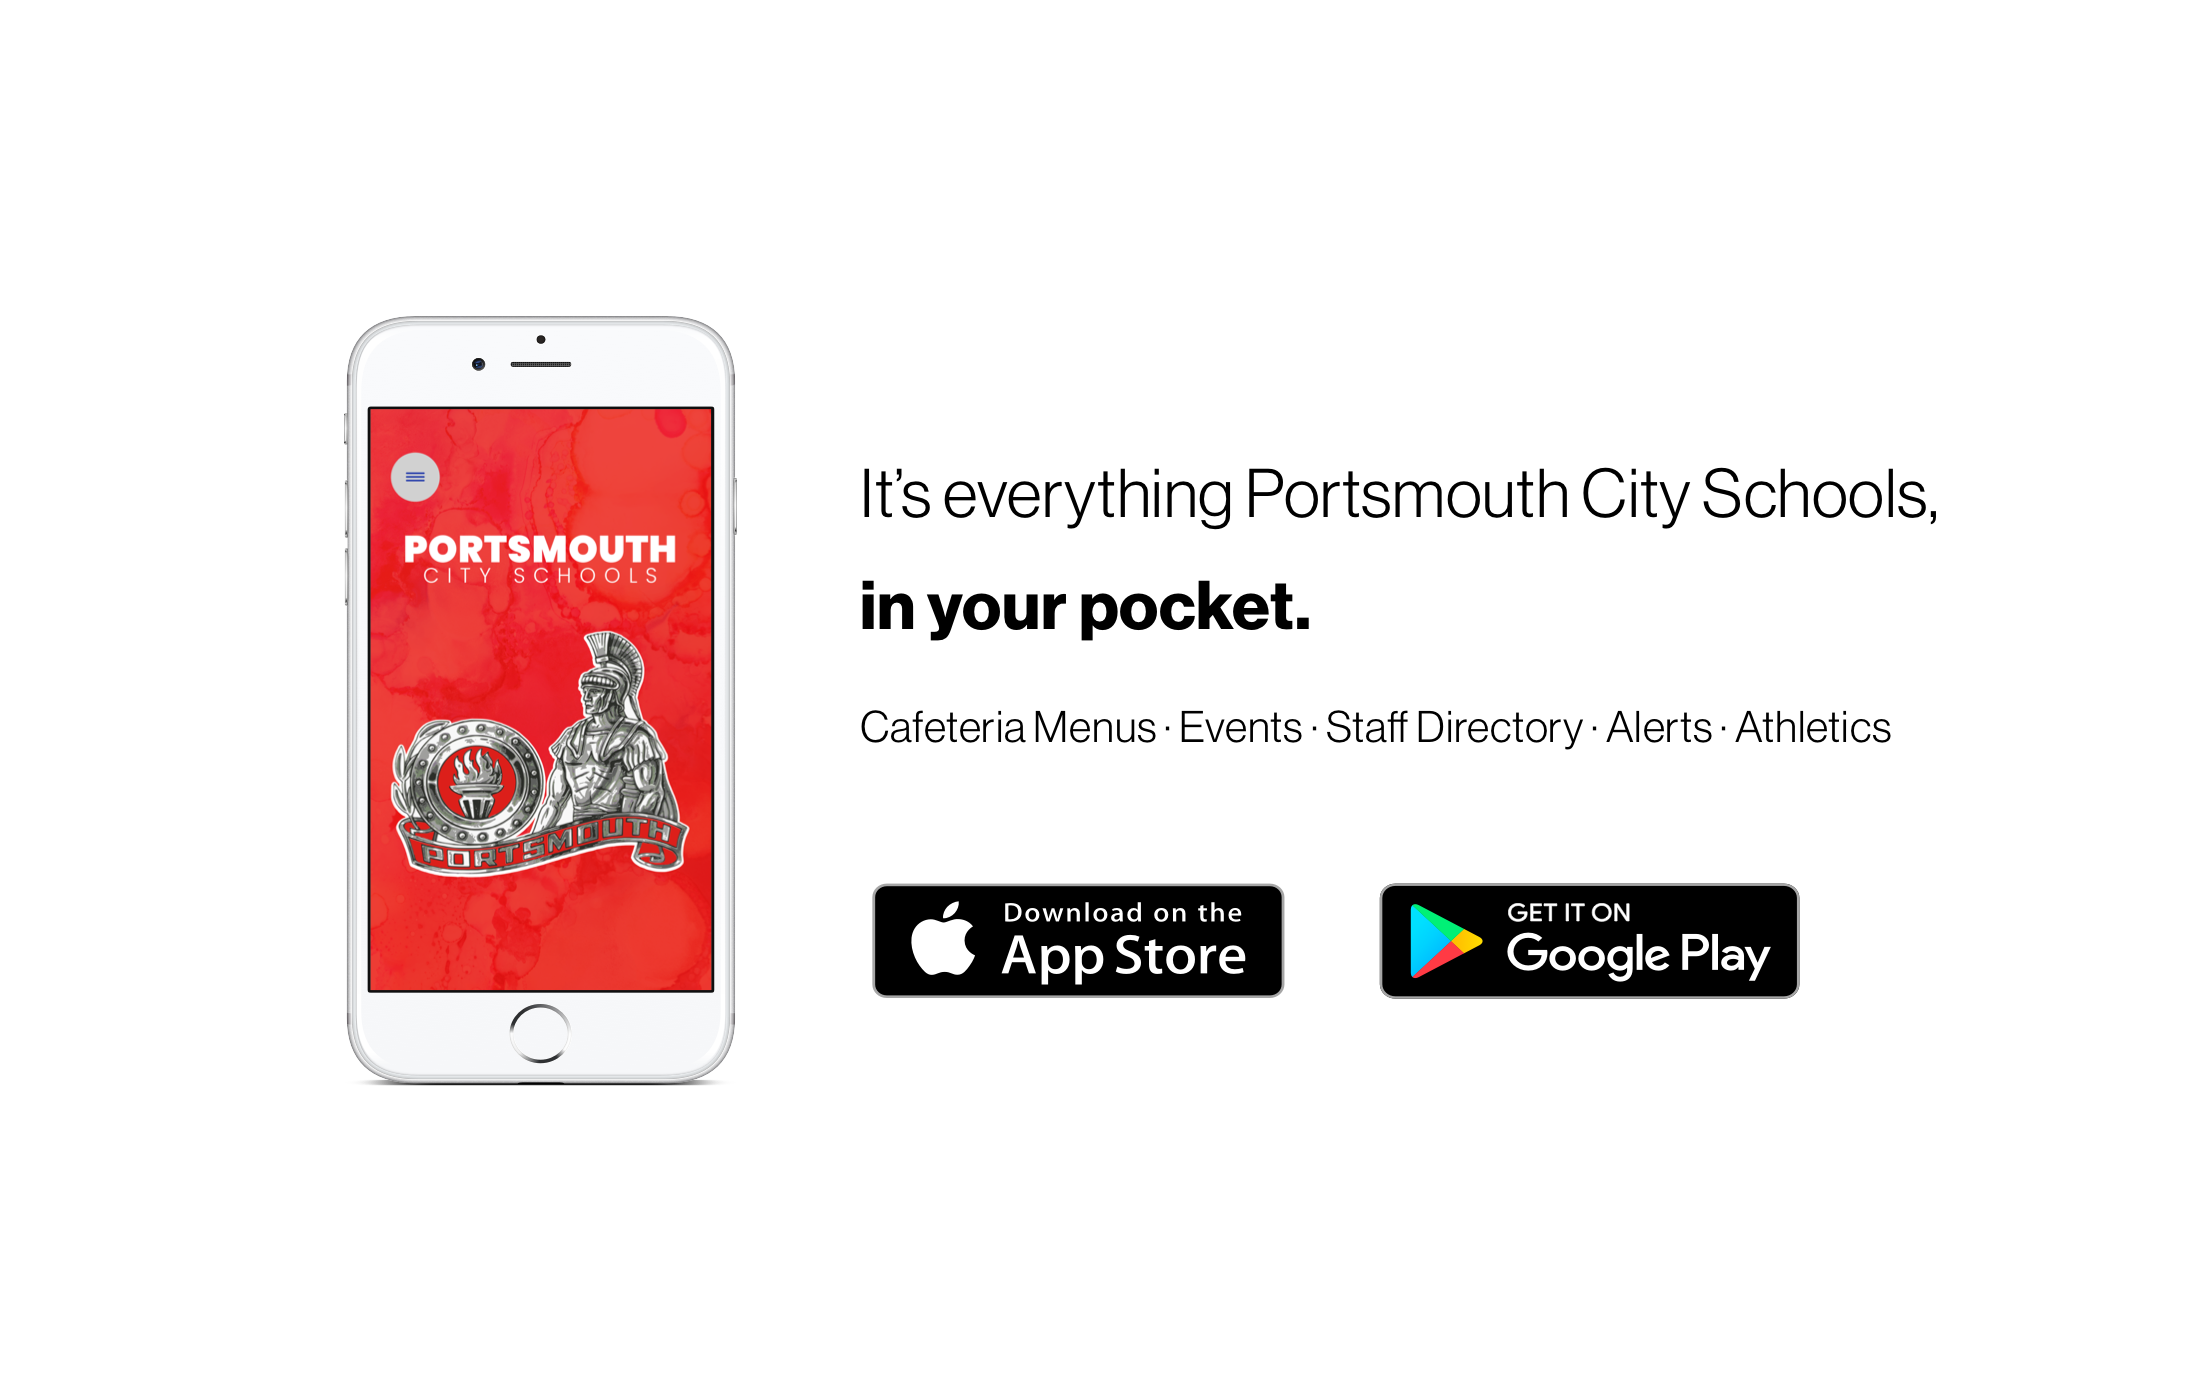 It's everything Portsmouth City Schools, in your pocket.